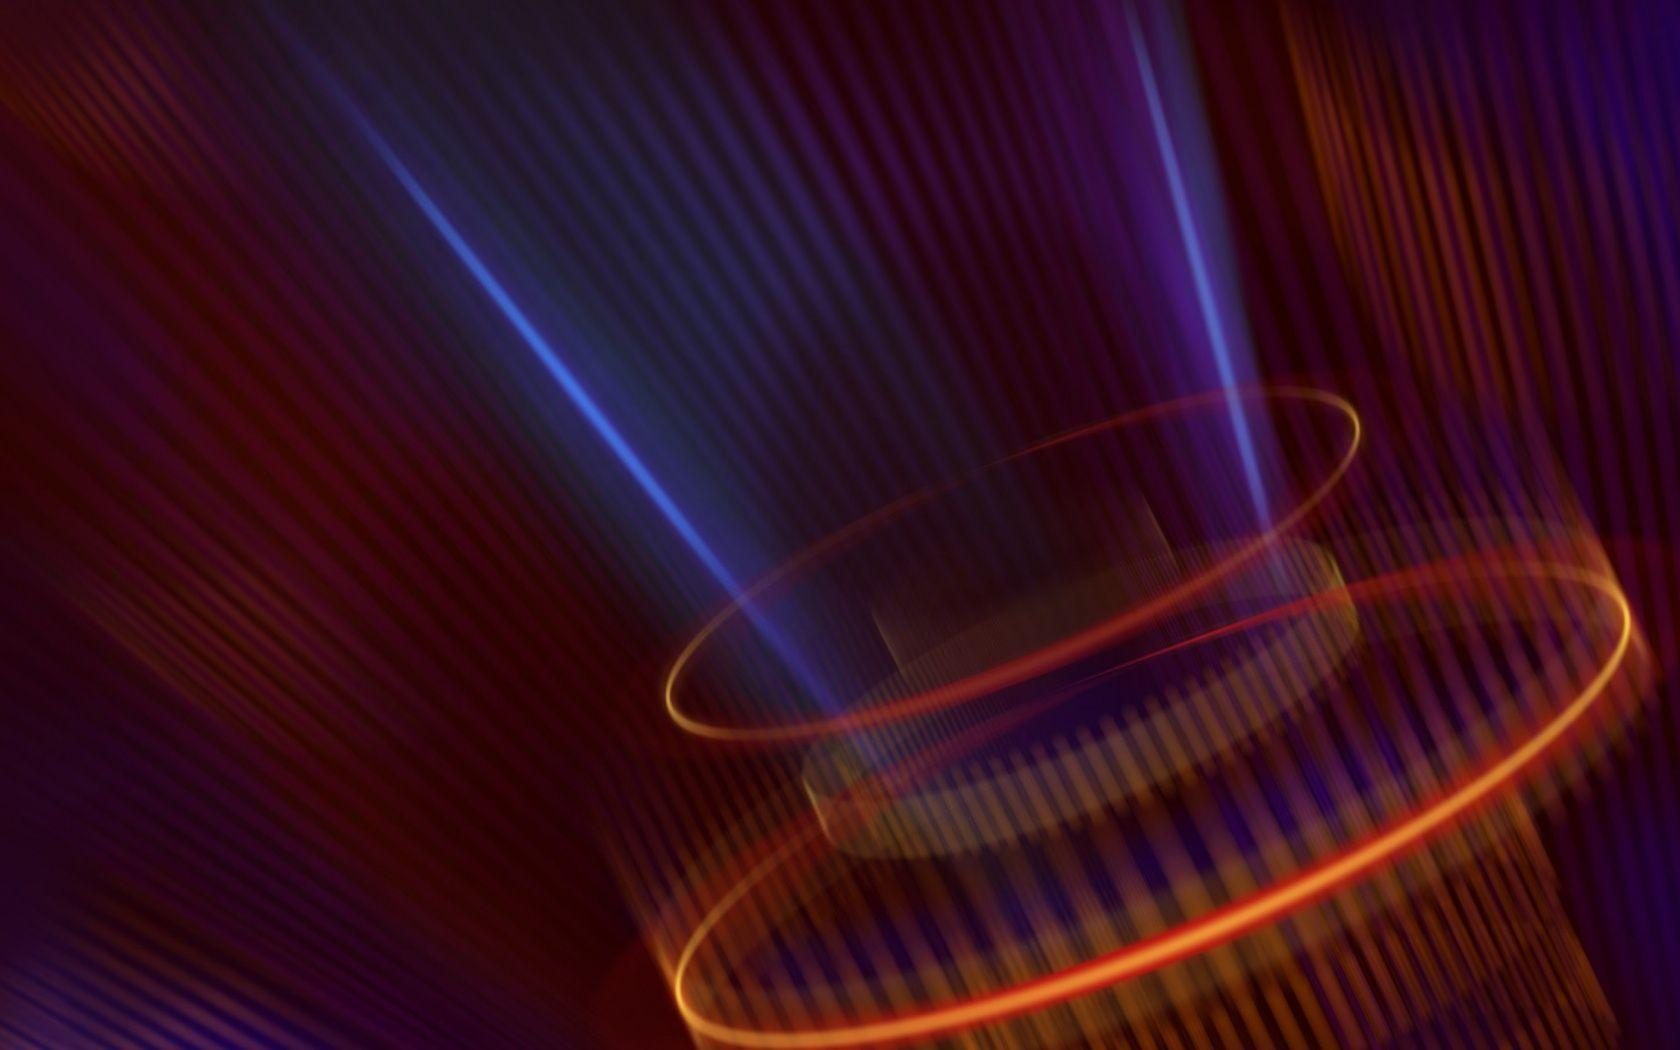 Archive of the Holography Forum • View topic - Holograms sans the ...